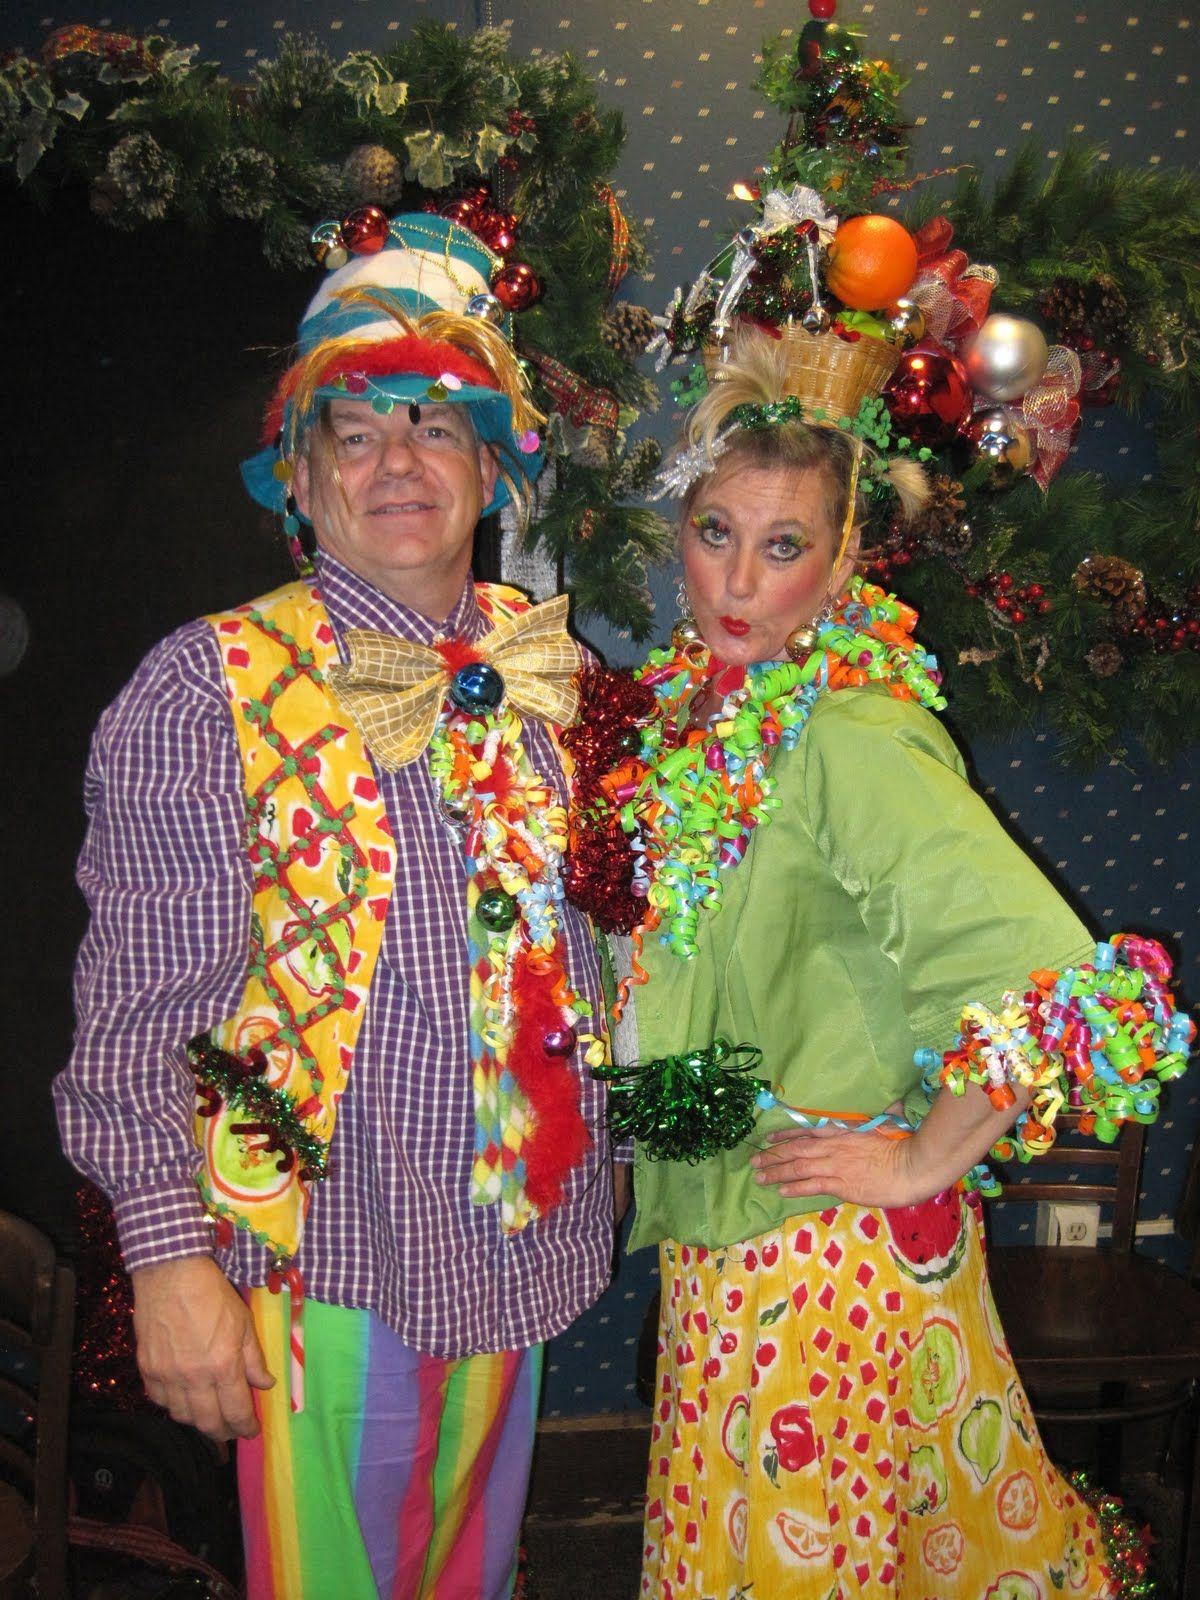 Uncategorized Whoville Characters Pictures 1000 images about whoville on pinterest costumes costumes